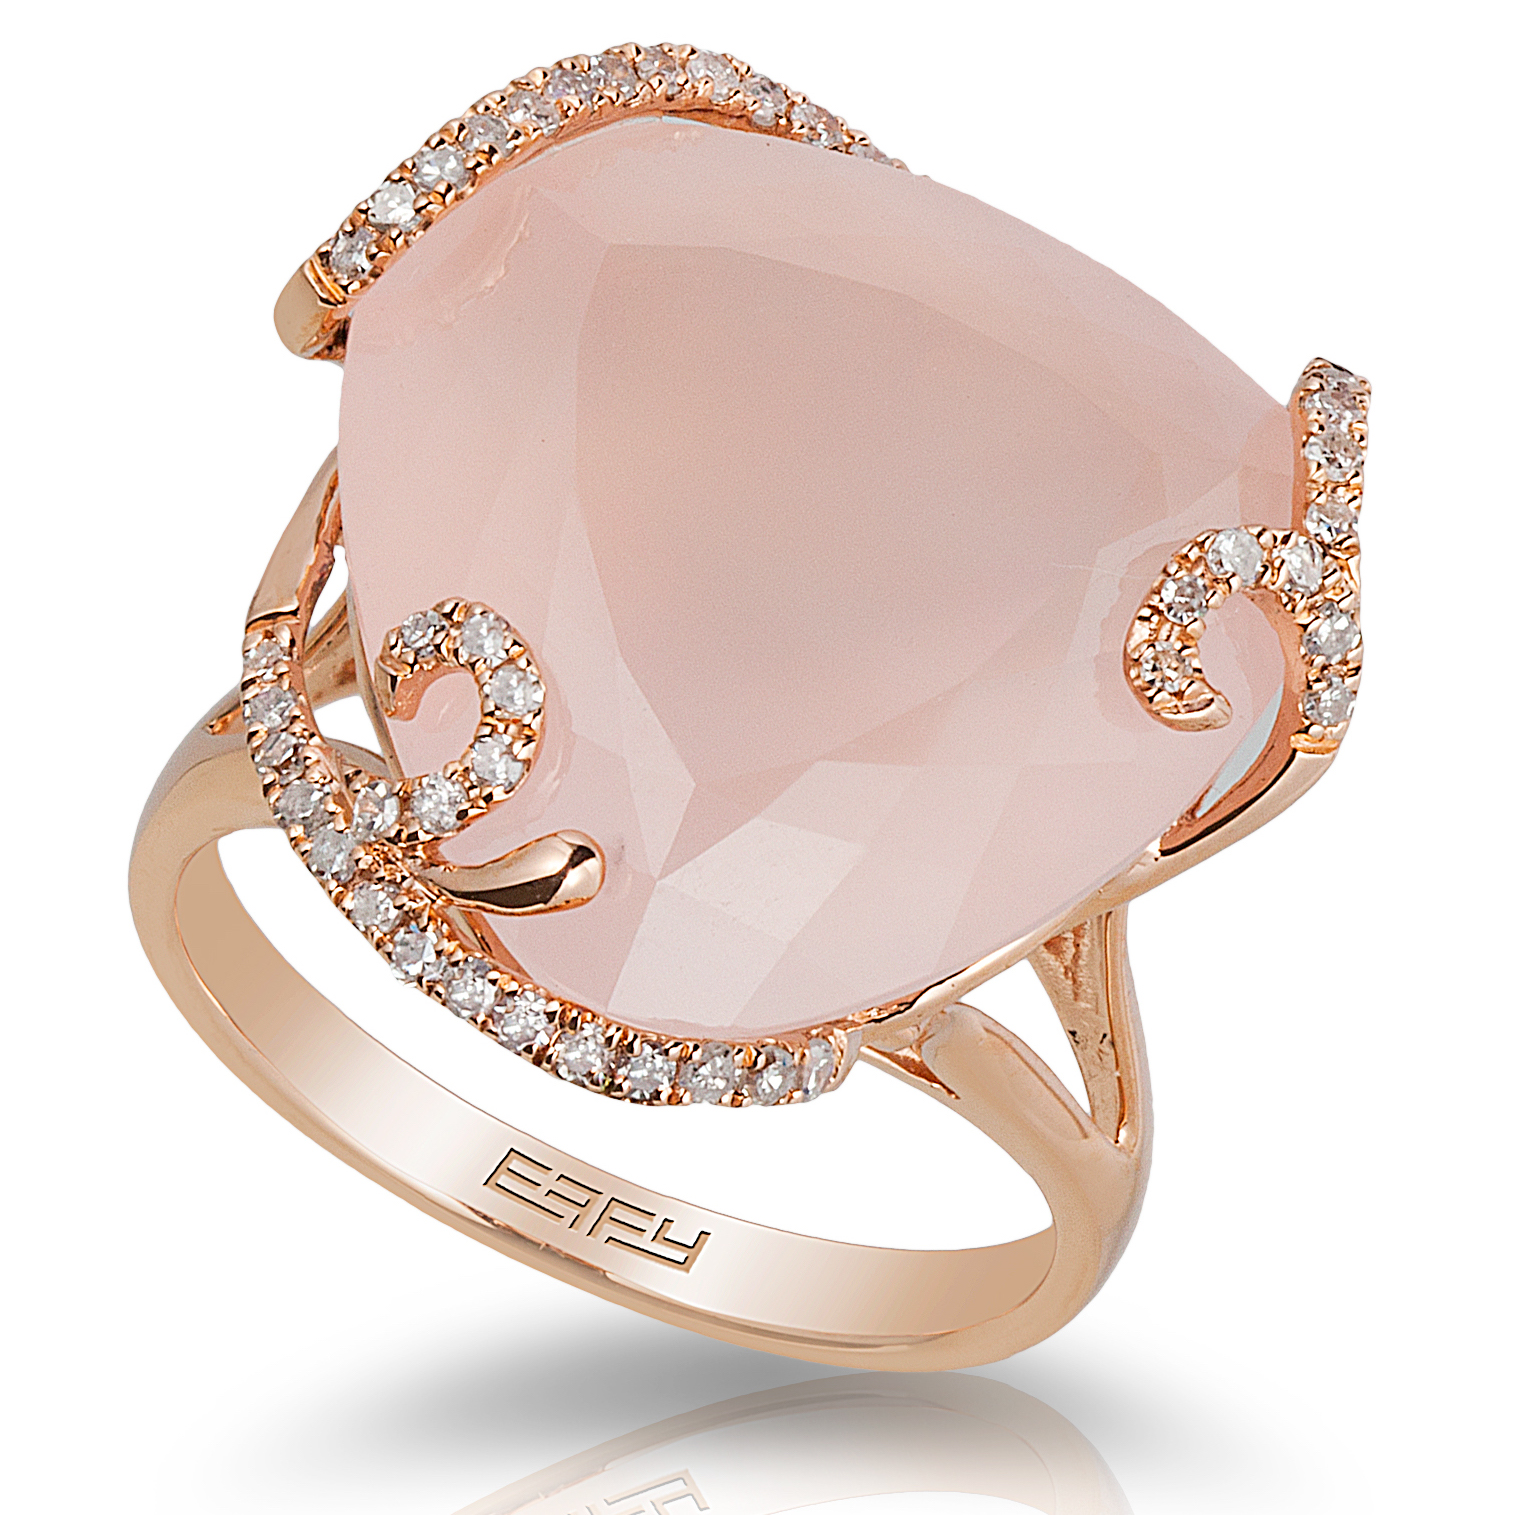 Effy rose quartz cocktail ring | JCK On Your Market